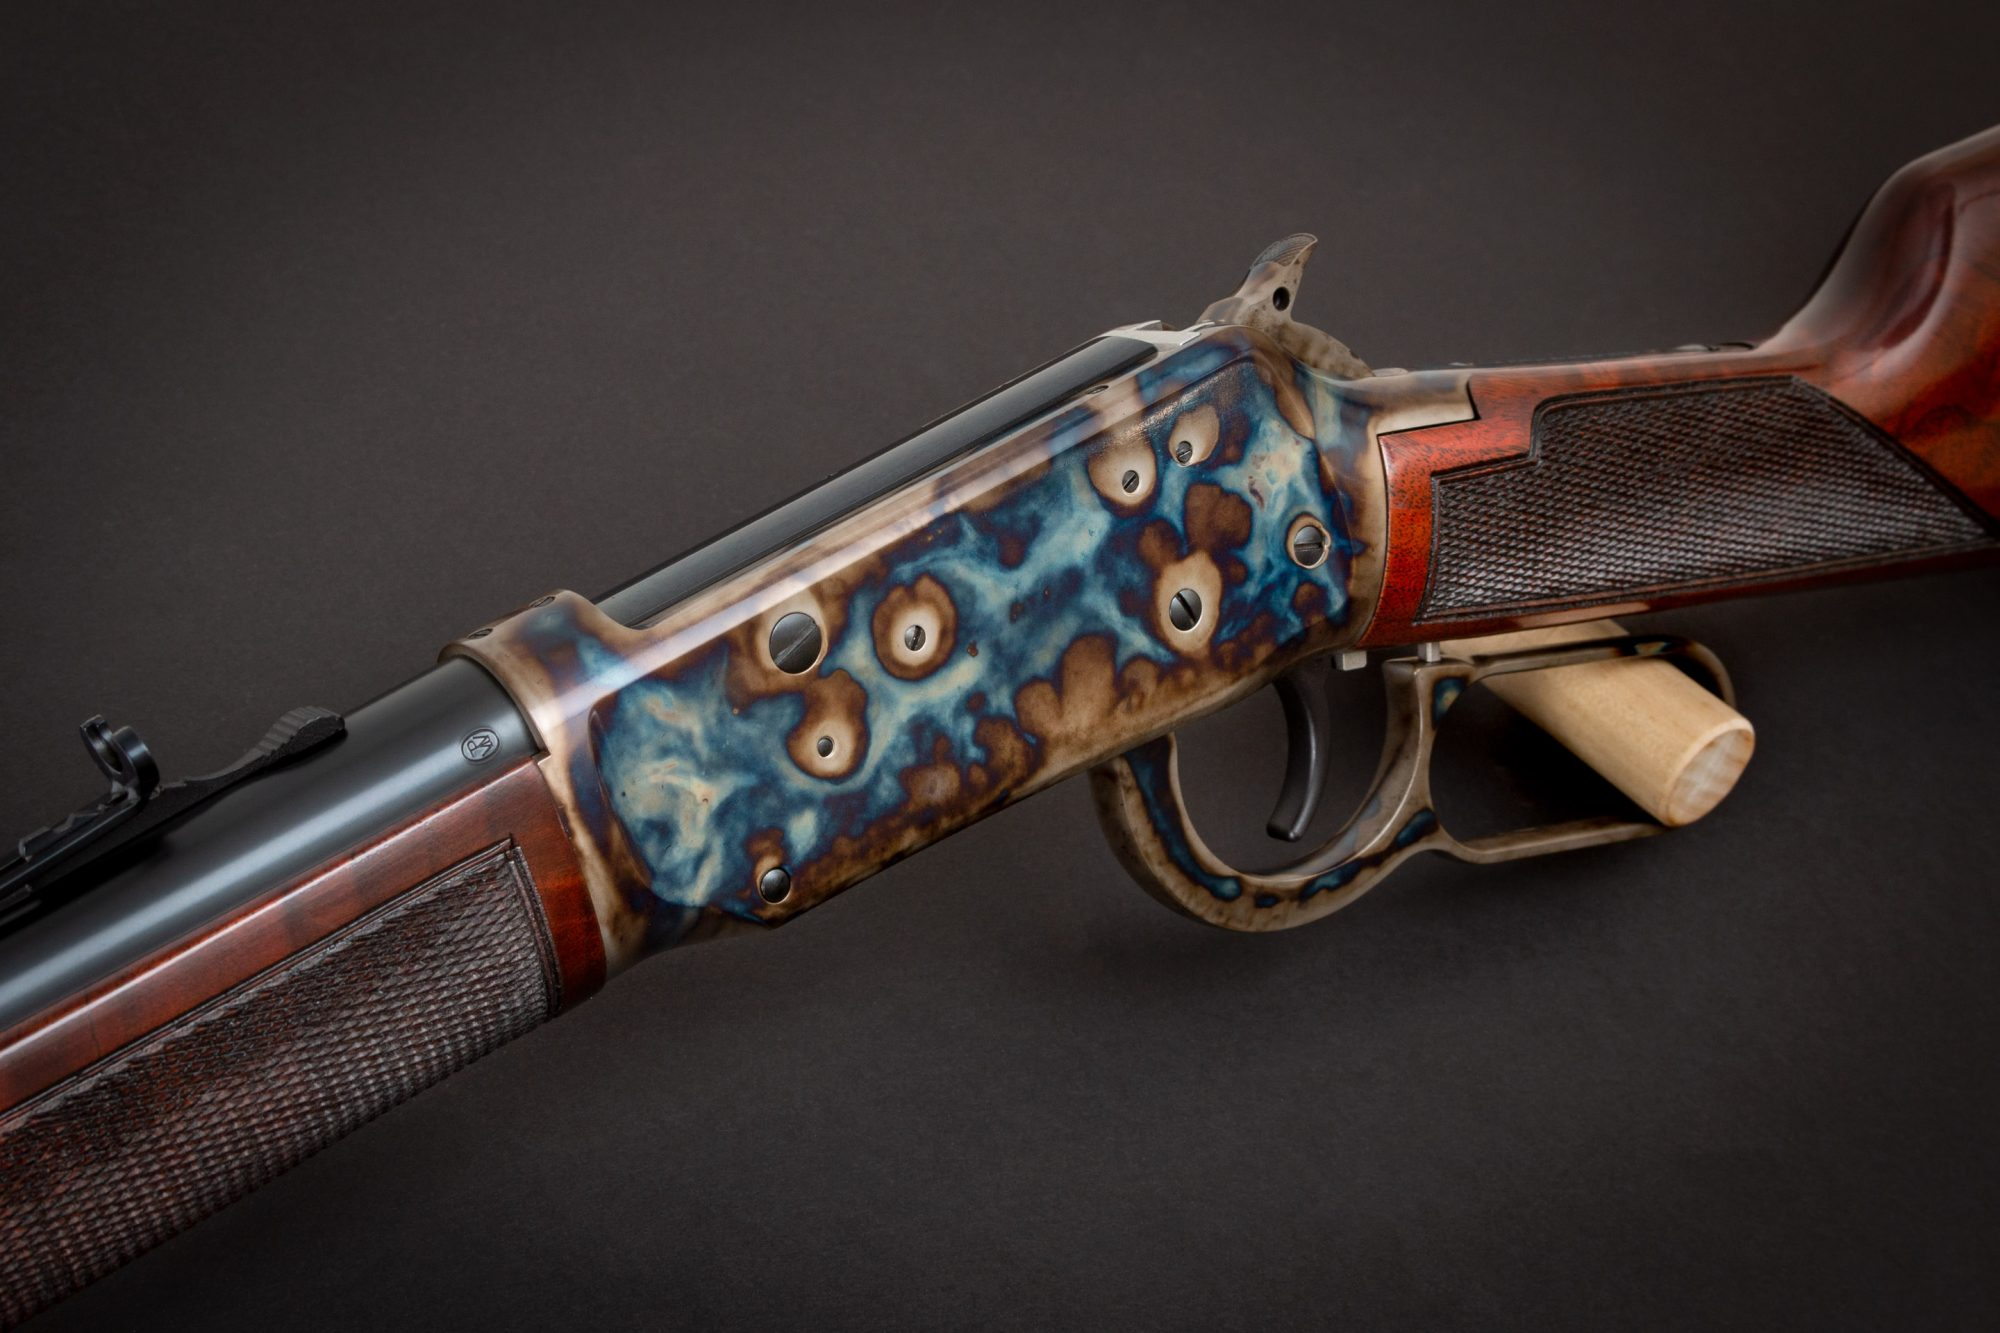 Photo of a refinished Winchester Model 1894 - The Turnbull Winchester 1894 features classic era metal finishes including bone charcoal color case hardening and refinished wood in Winchester red